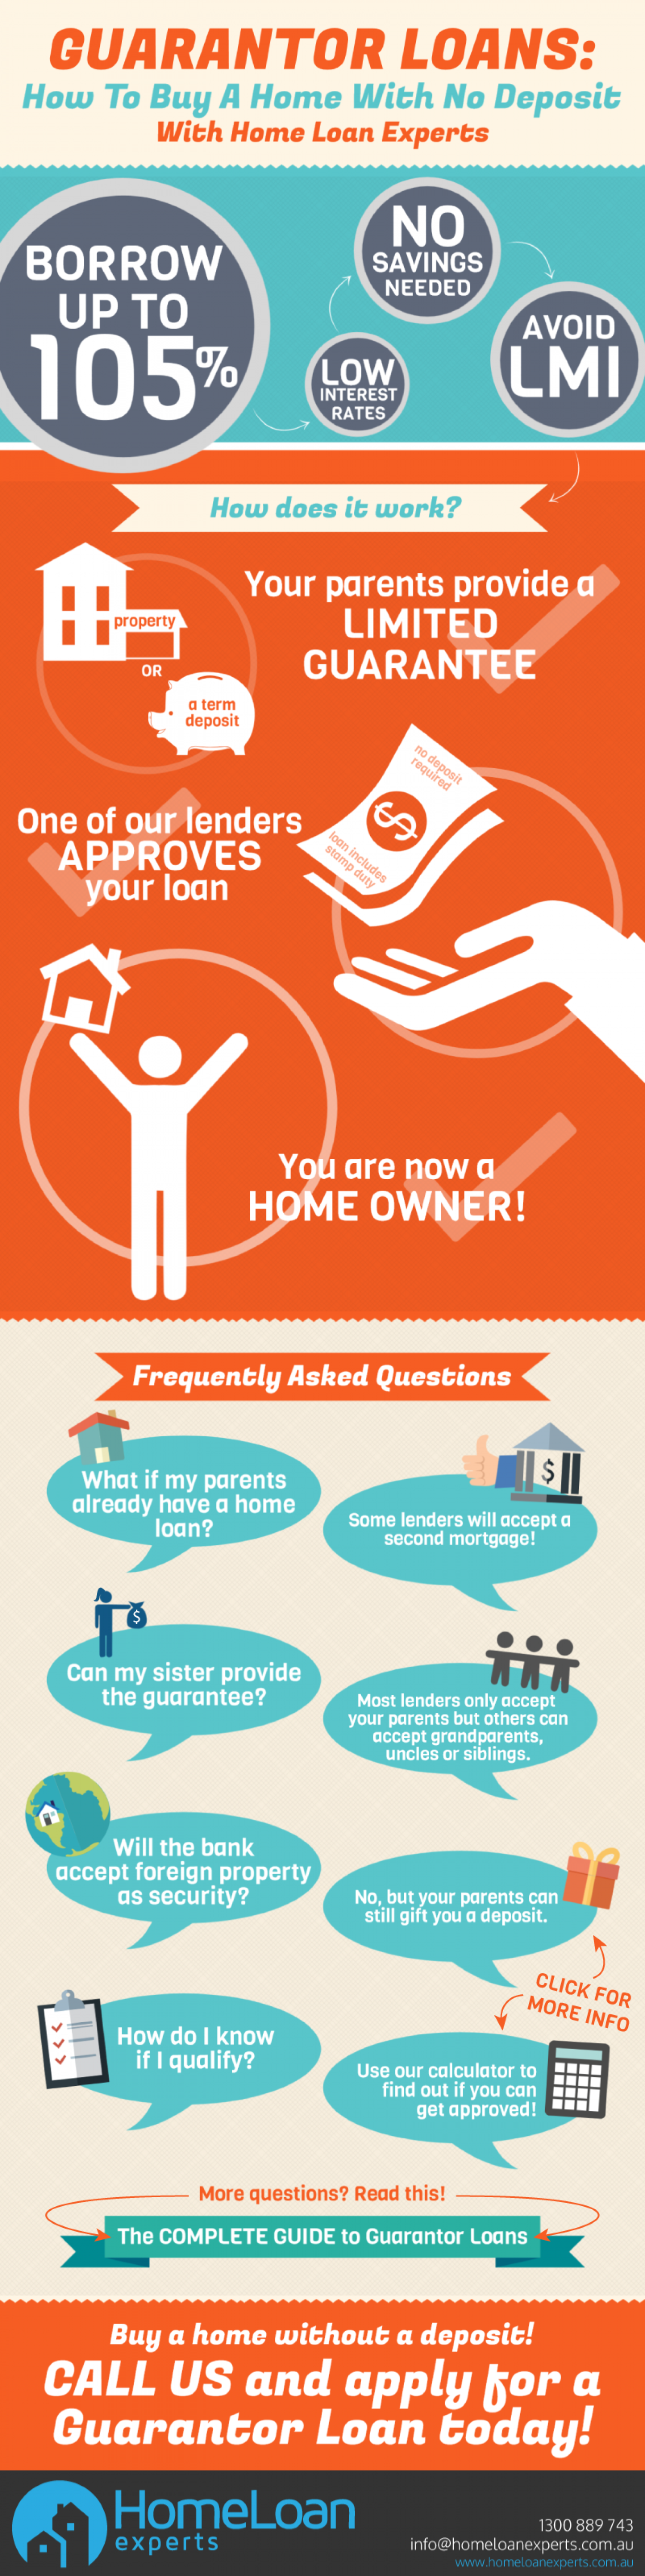 How Do Guarantor Loans Work? Infographic